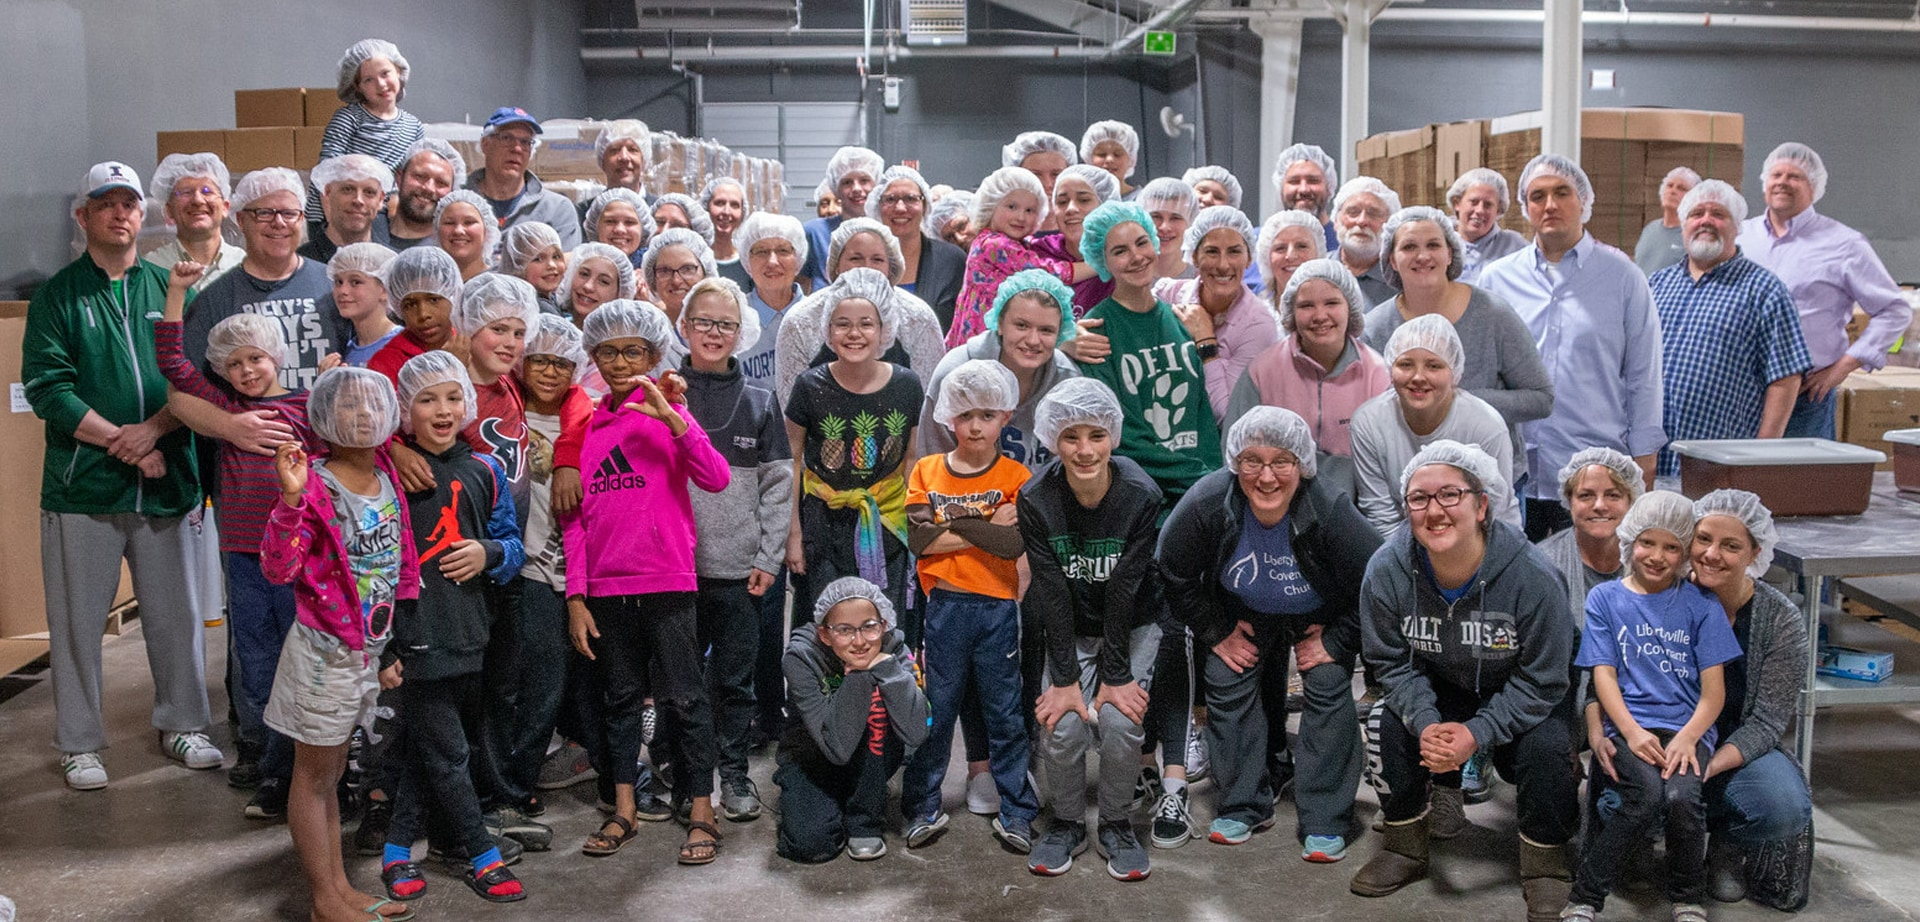 Libertyville Covenant Church at Feed My Starving Children in Libertyville IL